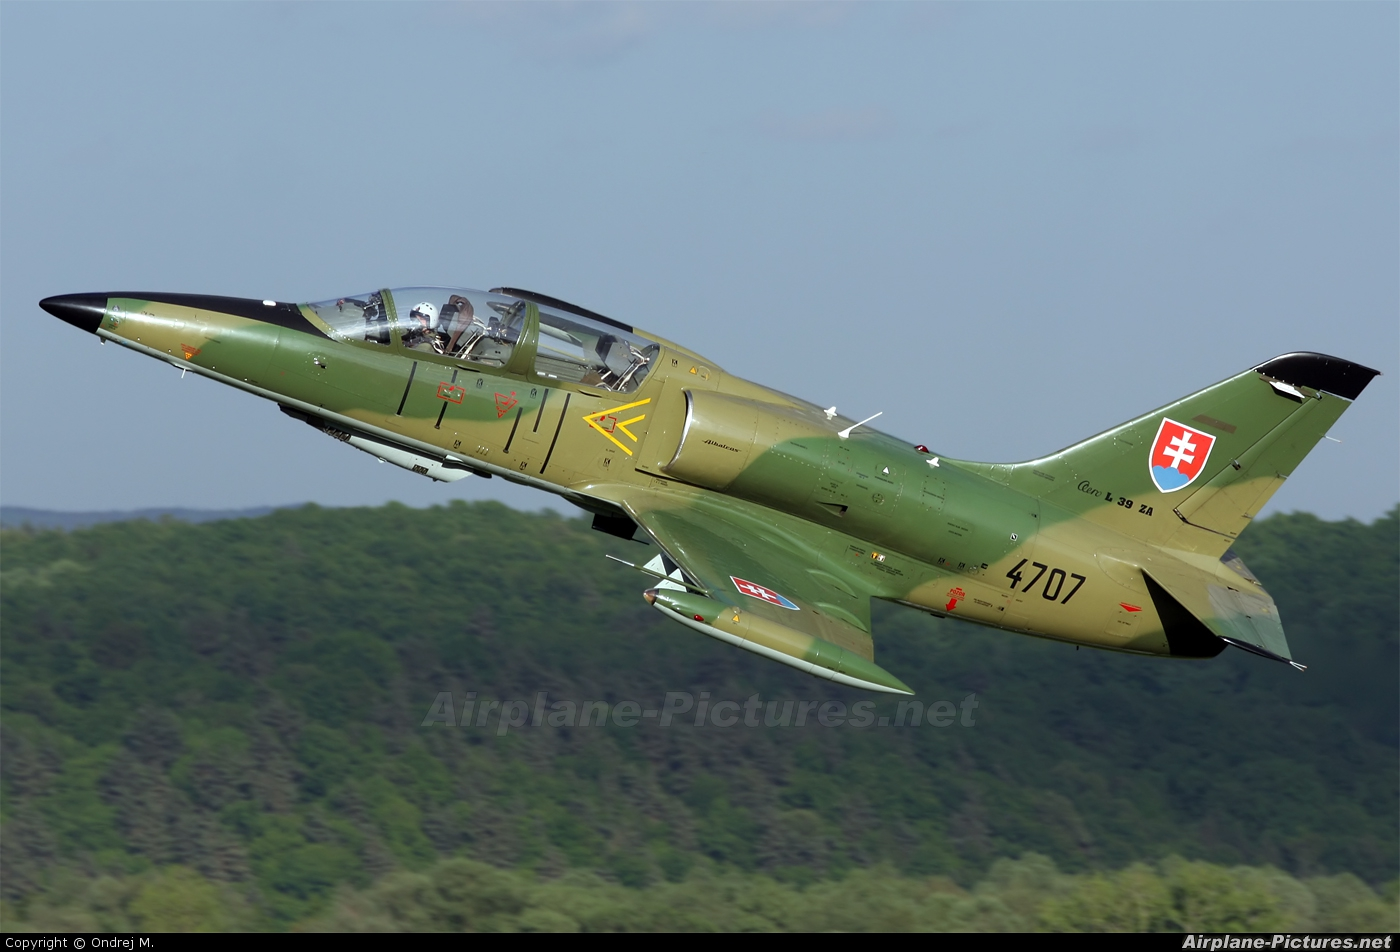 Slovakia -  Air Force 4707 aircraft at Sliač